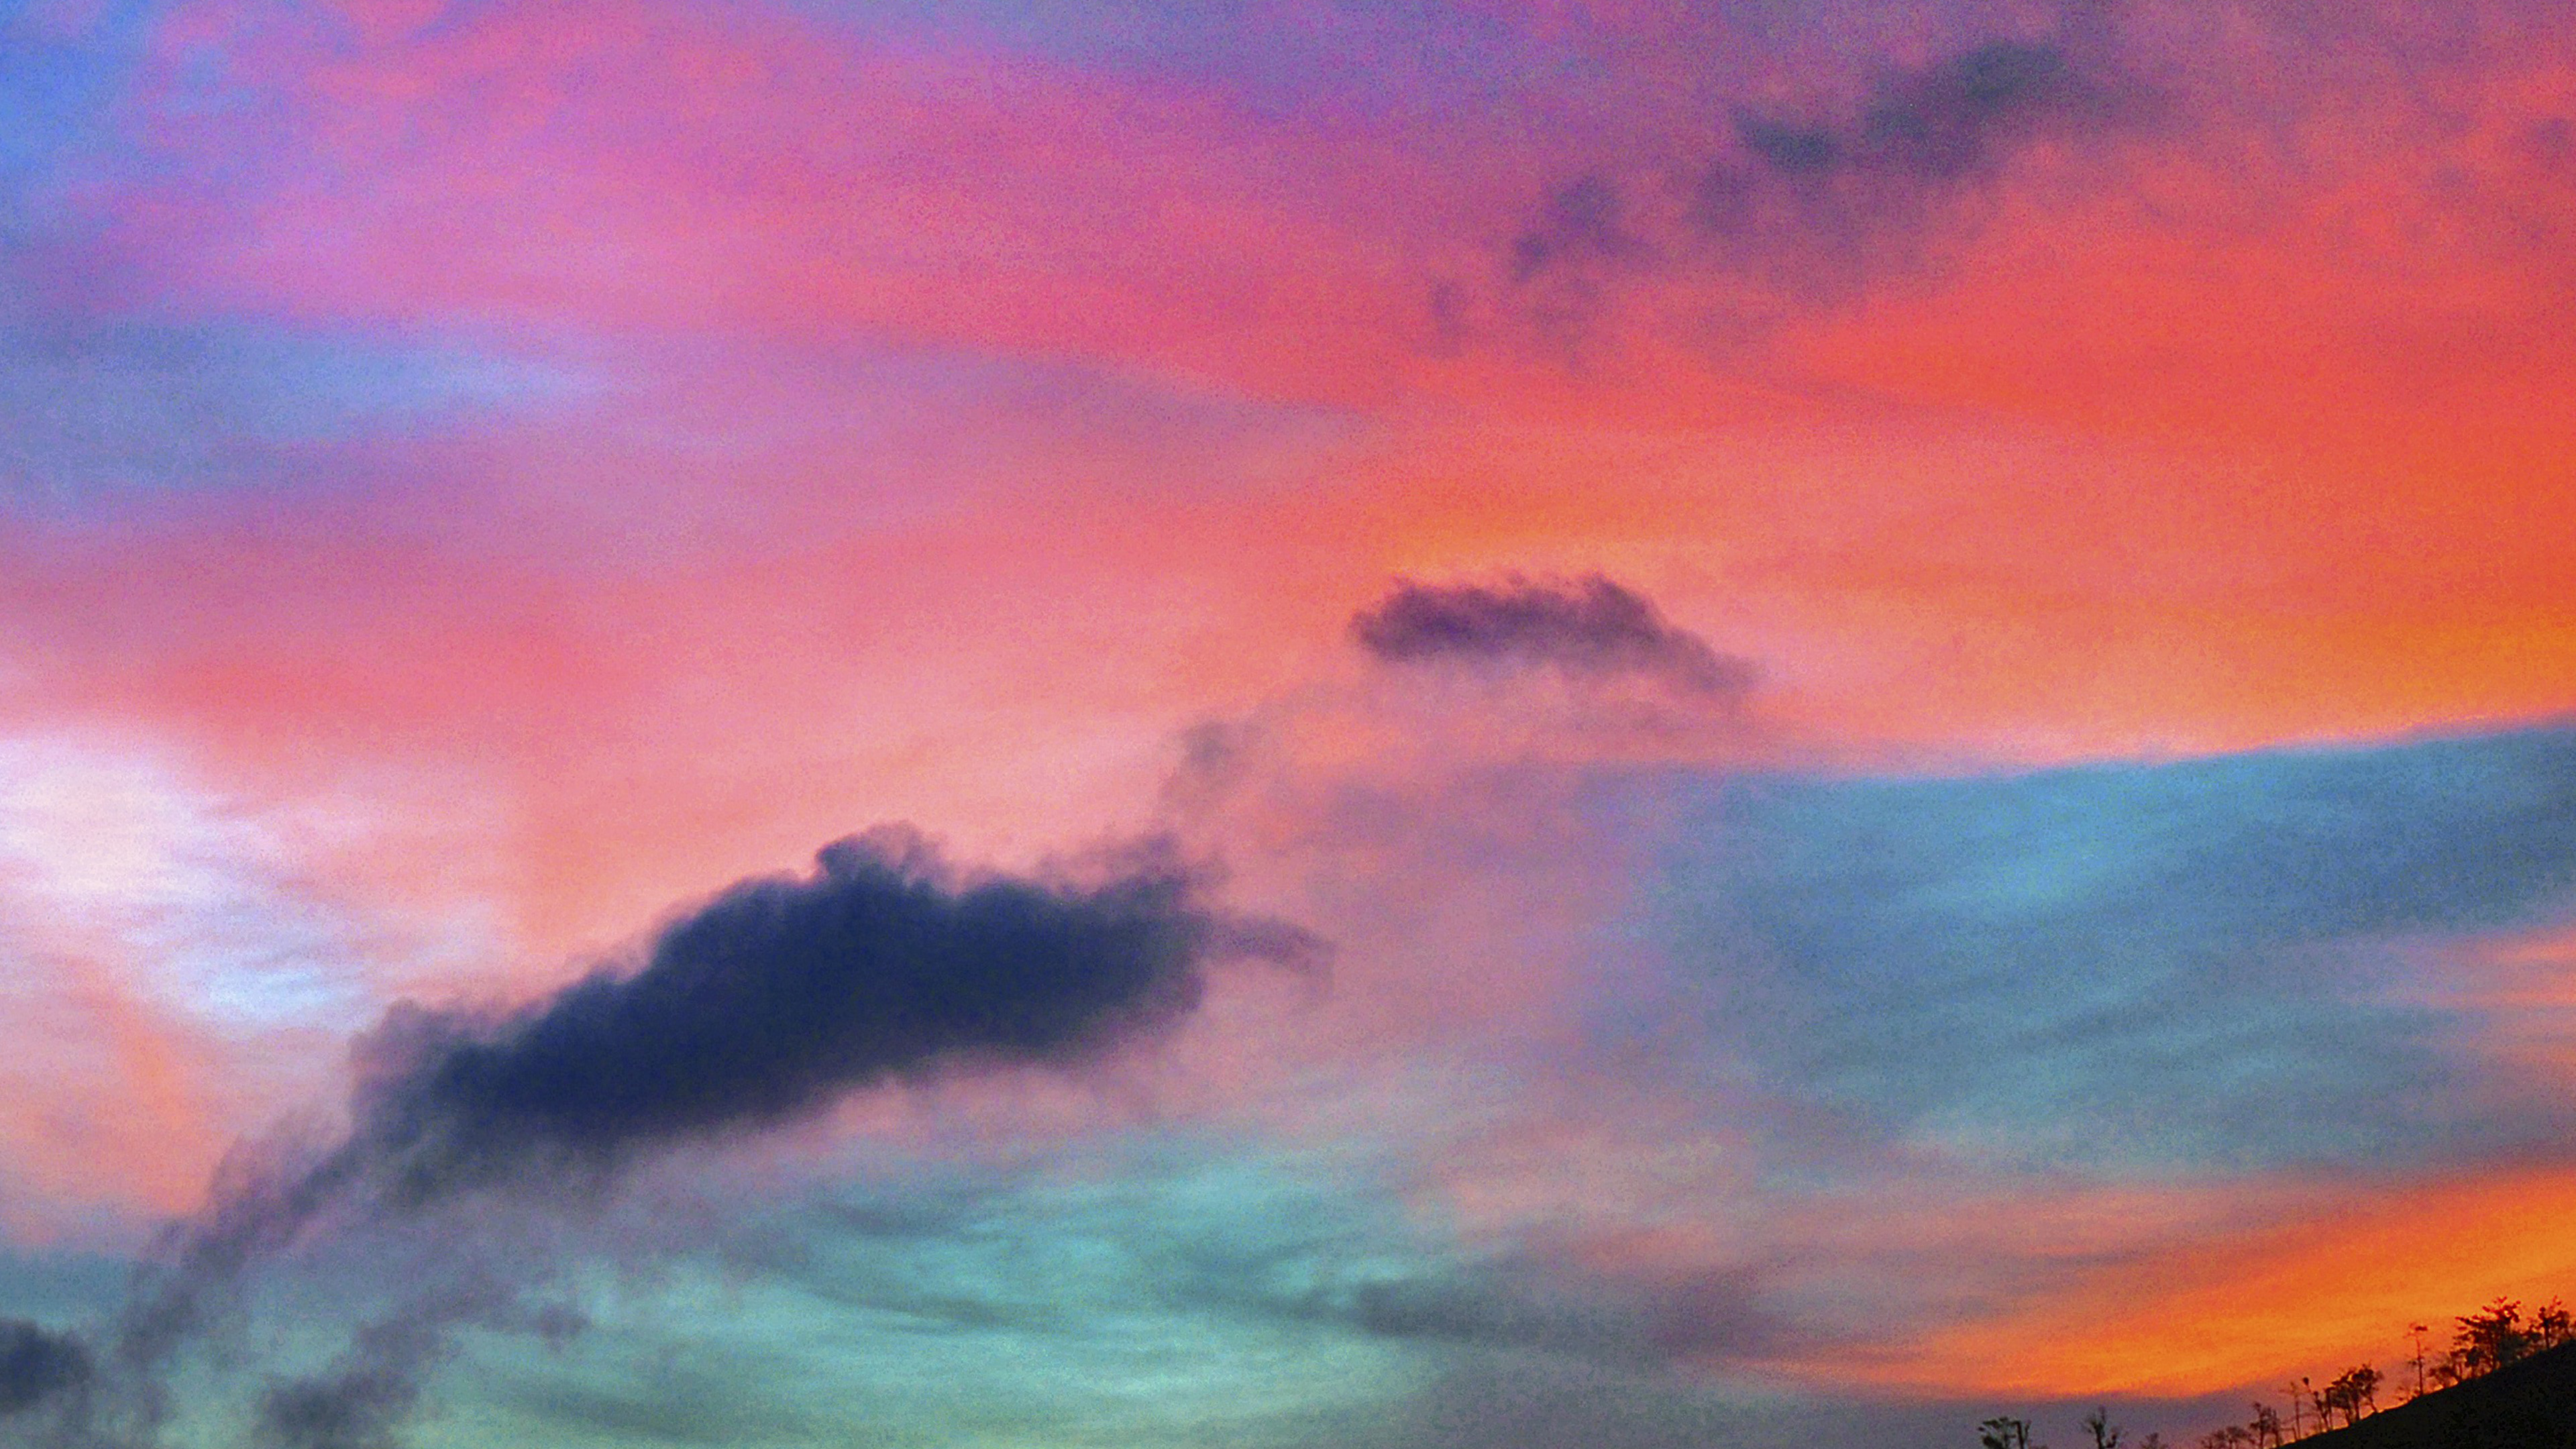 wallpaper for desktop, laptop | ng95-sky-rainbow-cloud ...